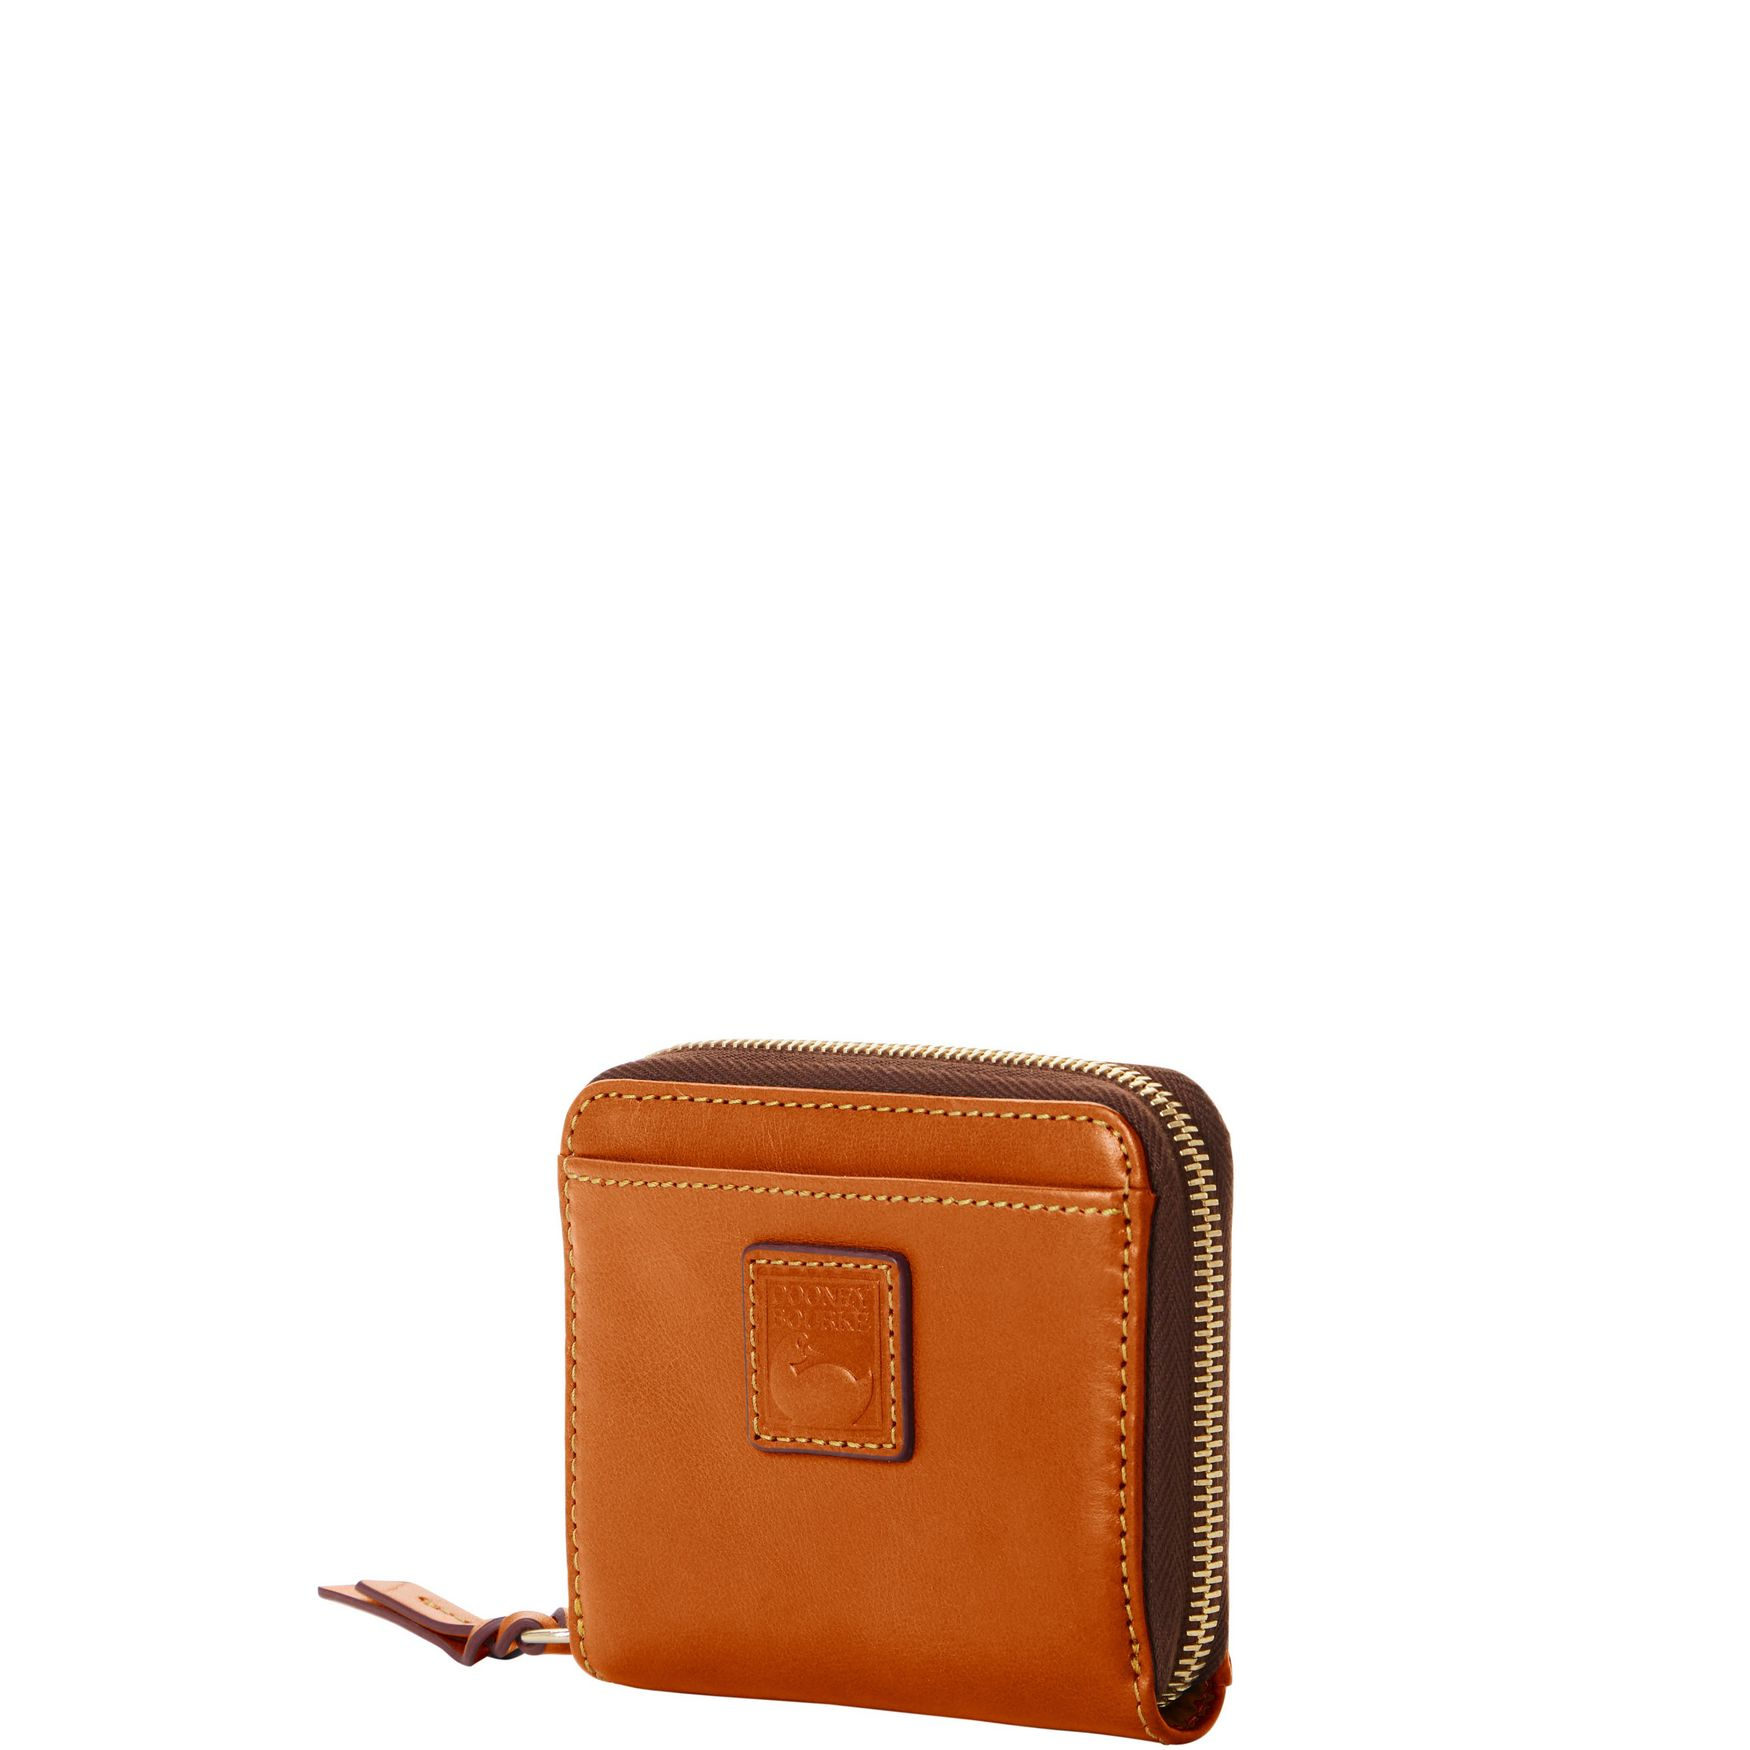 Dooney-amp-Bourke-Florentine-Small-Zip-Around-Wallet thumbnail 12